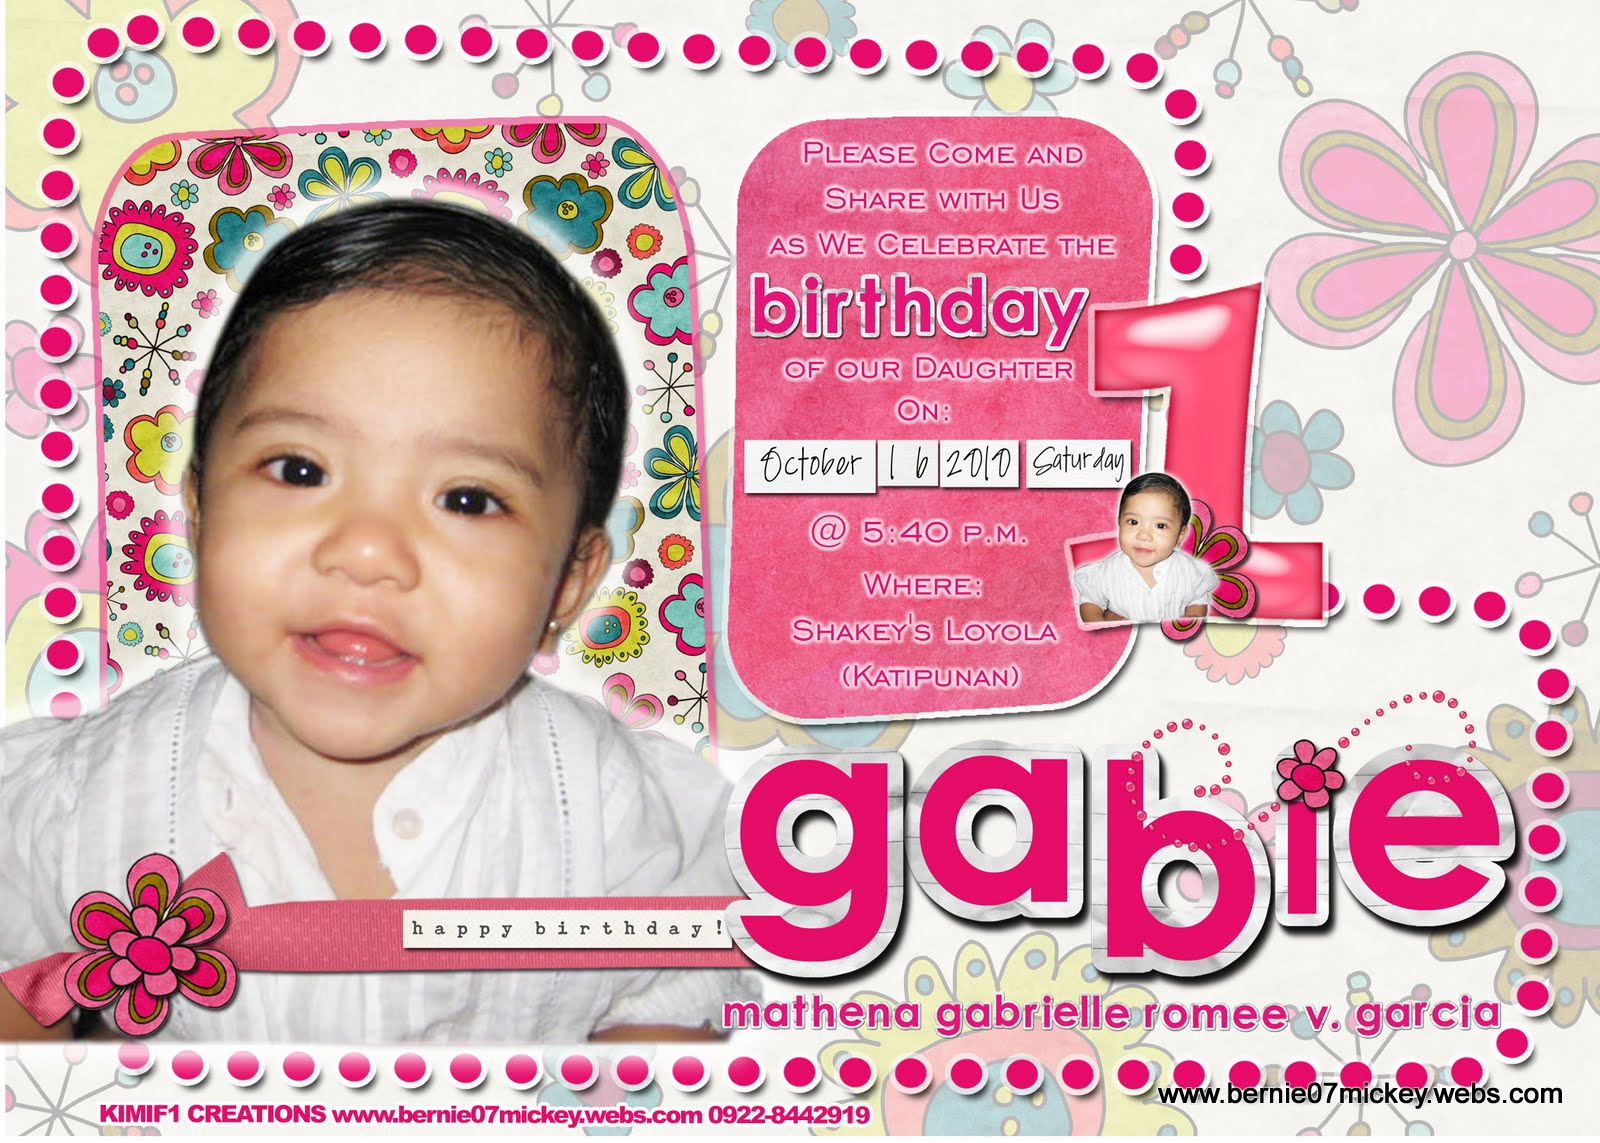 F1 digital scrapaholic gabs 1st birthday invitation gabs 1st birthday invitation stopboris Images